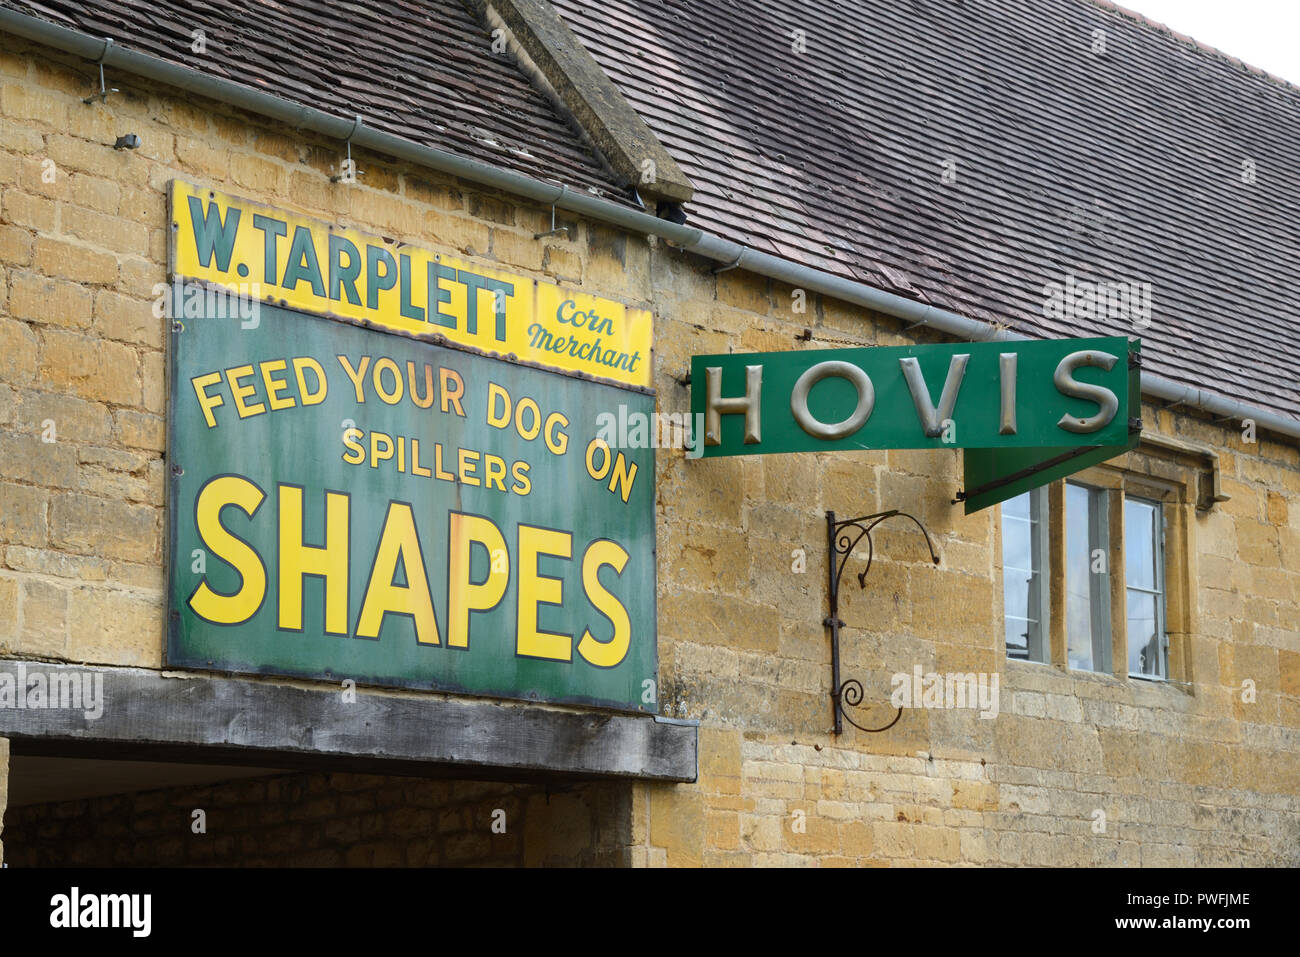 Vintage or Old Hovis Advert, Advertisement or Shop Sign in Paxton Village near Chipping Campden Cotswold Gloucestershire England - Stock Image